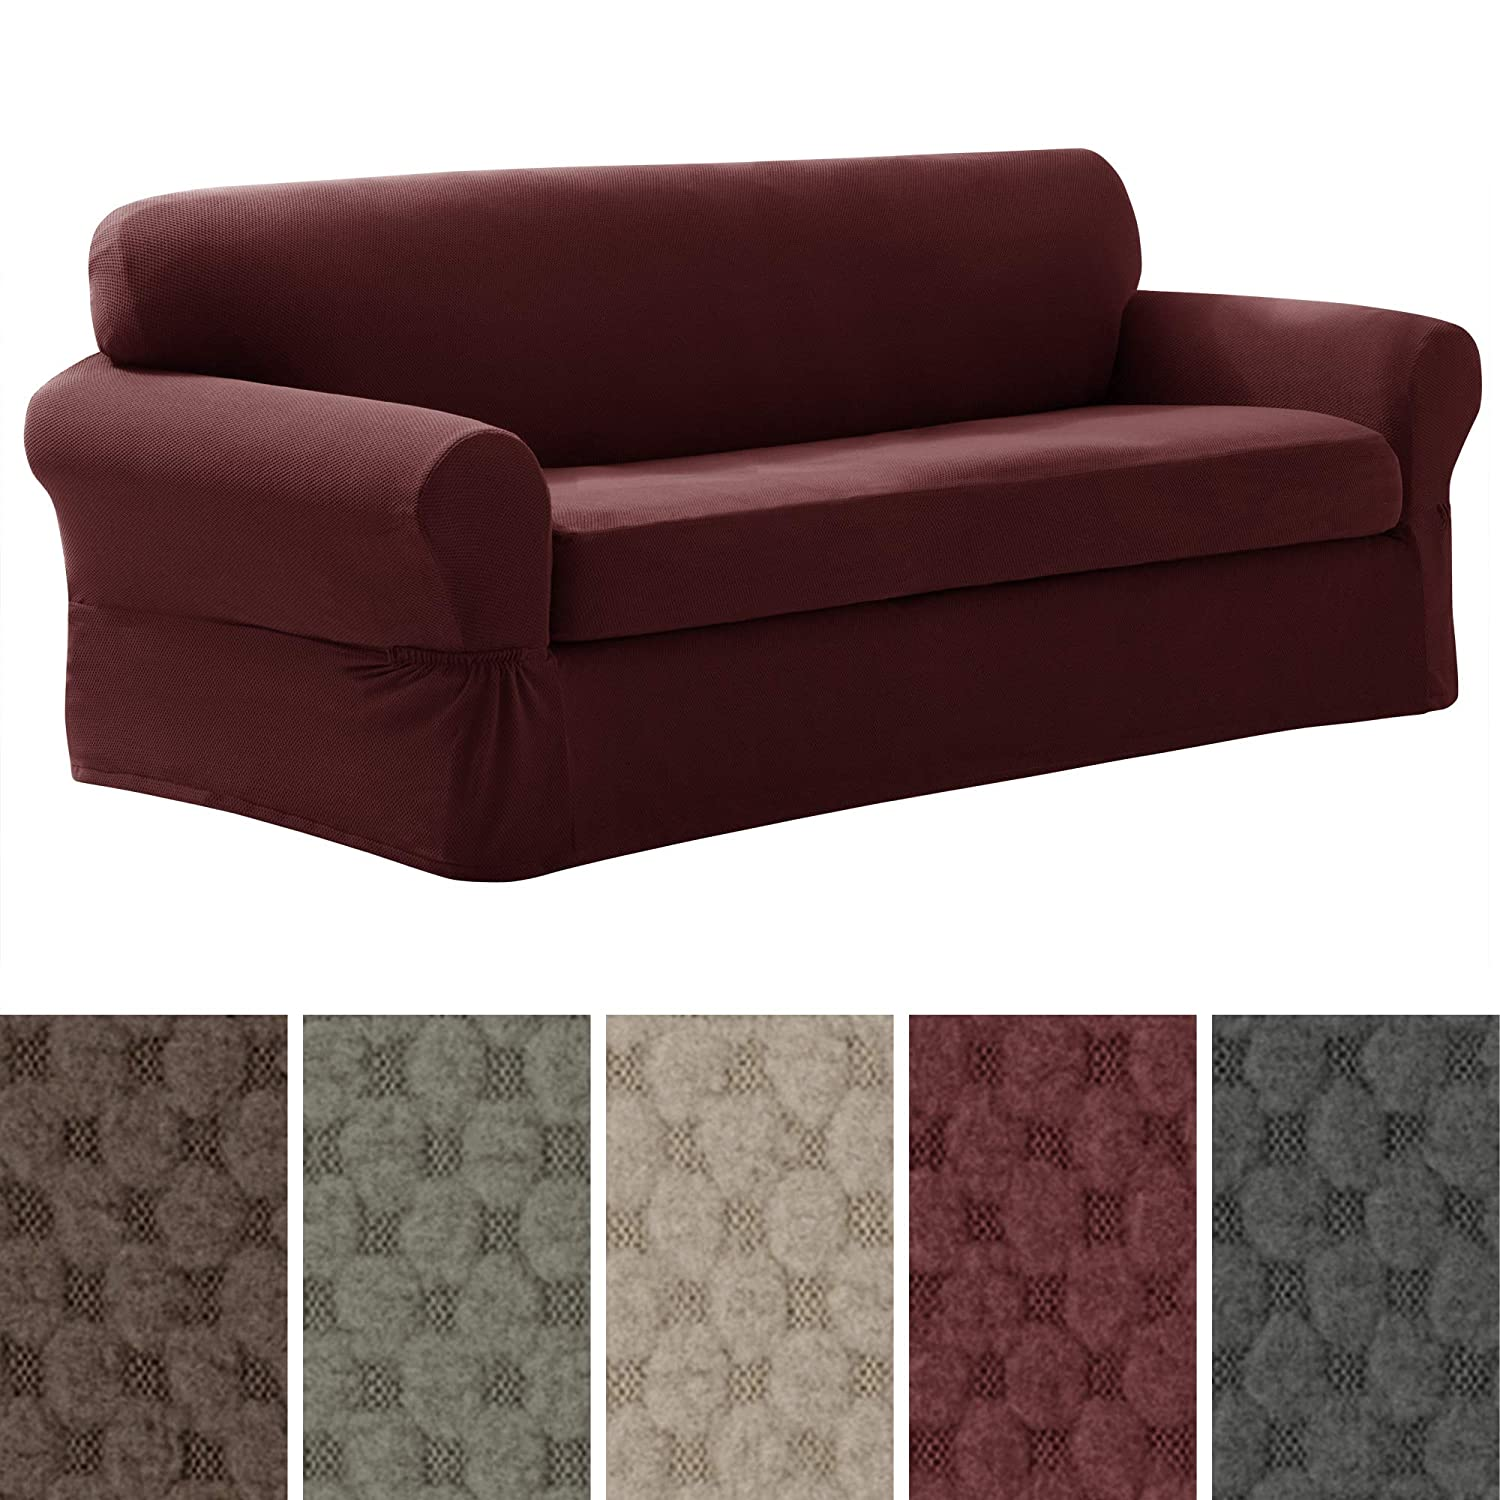 Maytex Pixel Stretch 2-Piece Slipcover Sofa, Wine 4300511